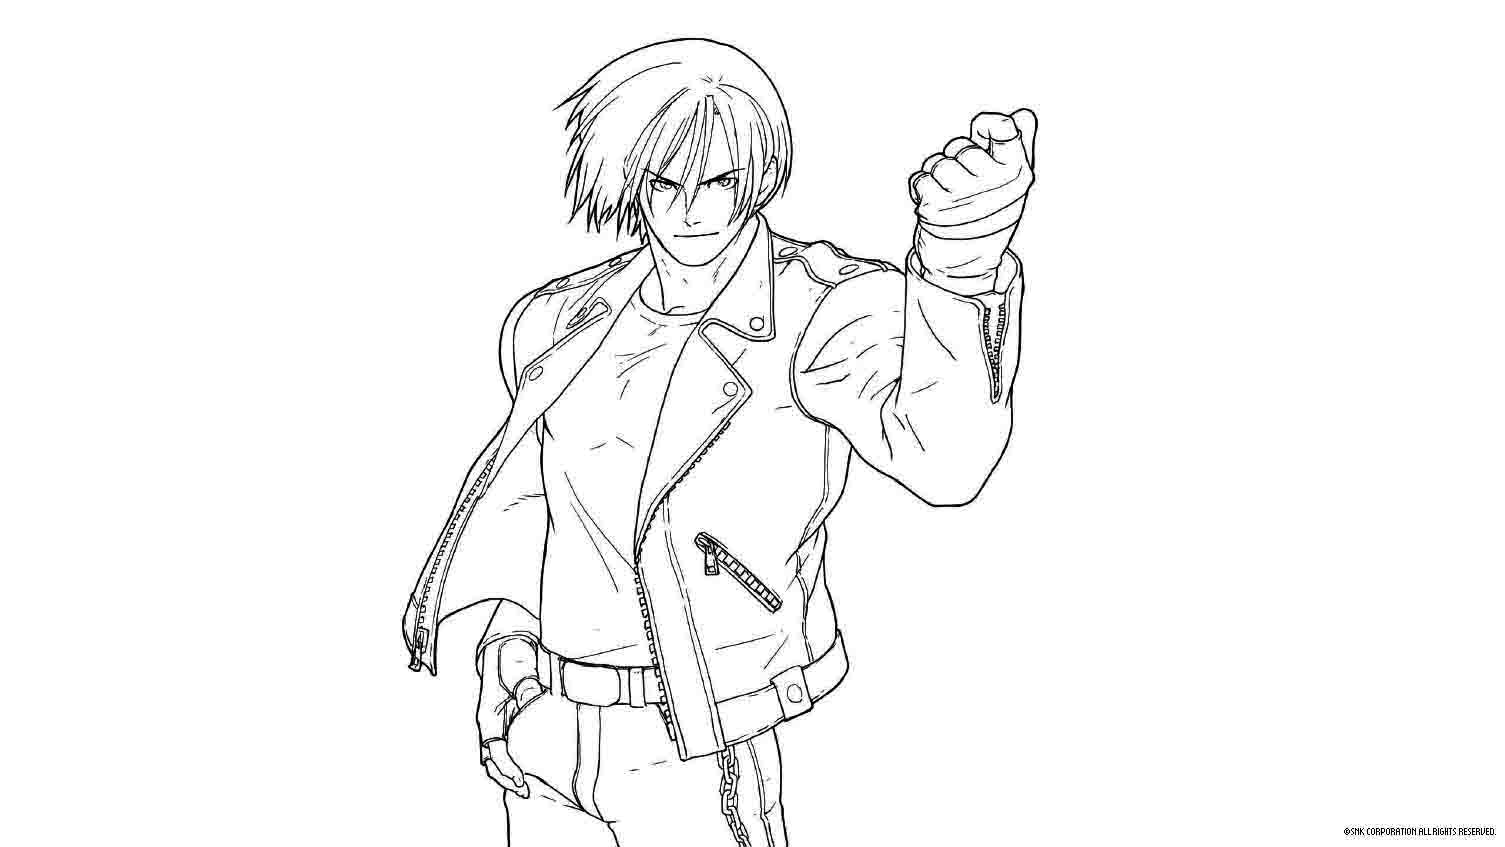 A black and white sketch shows Kyo Kusanagi standing with his left arm in the air